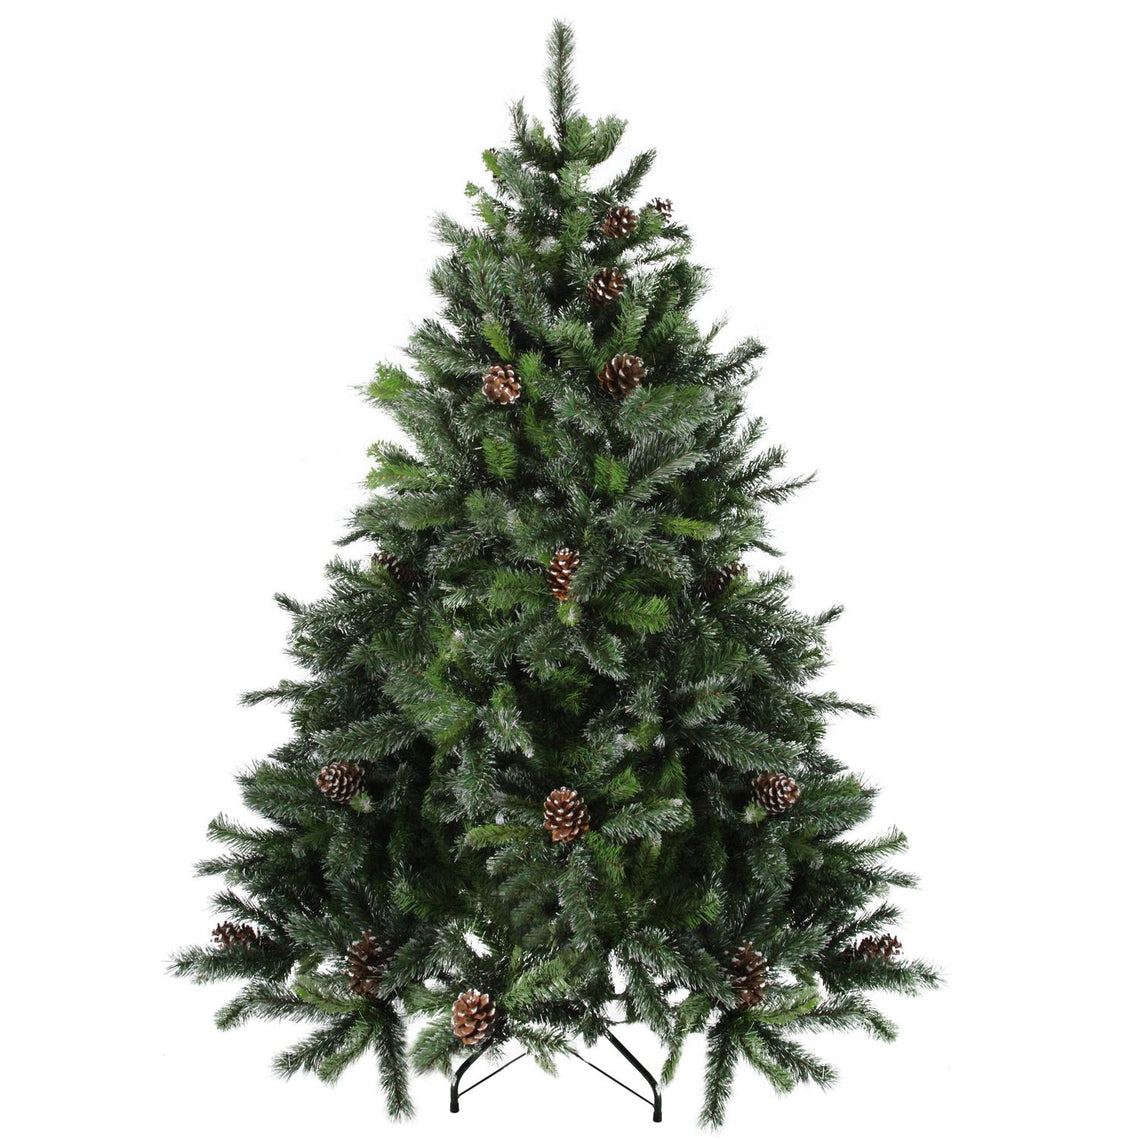 6.5' Snowy Delta Pine with Pine Cones Artificial Christmas Tree - Unlit